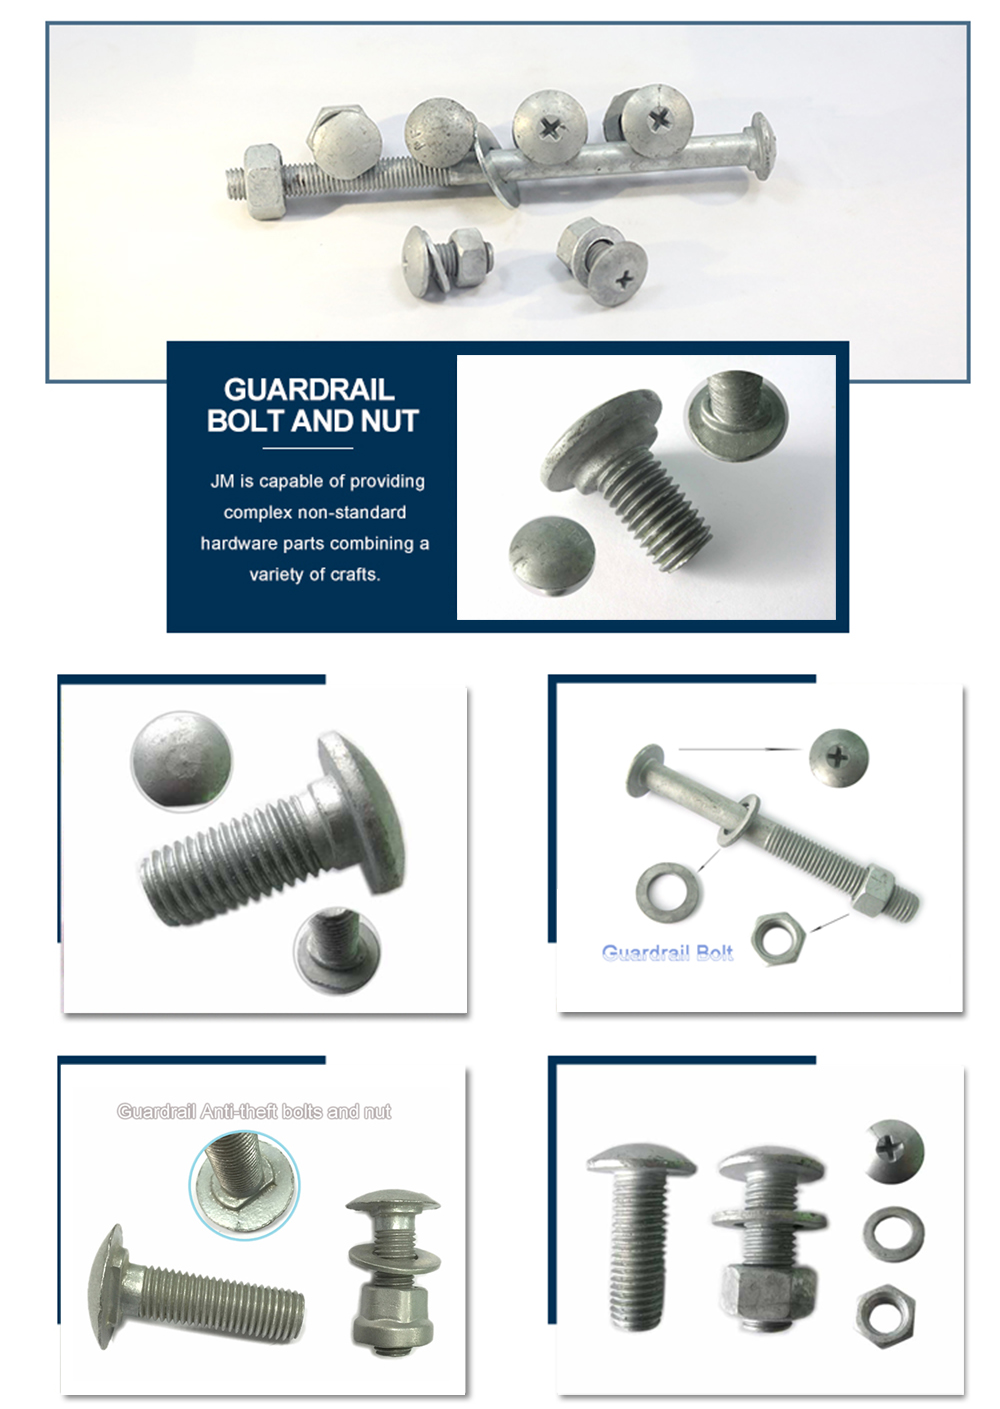 the details of Guardrail Bolt